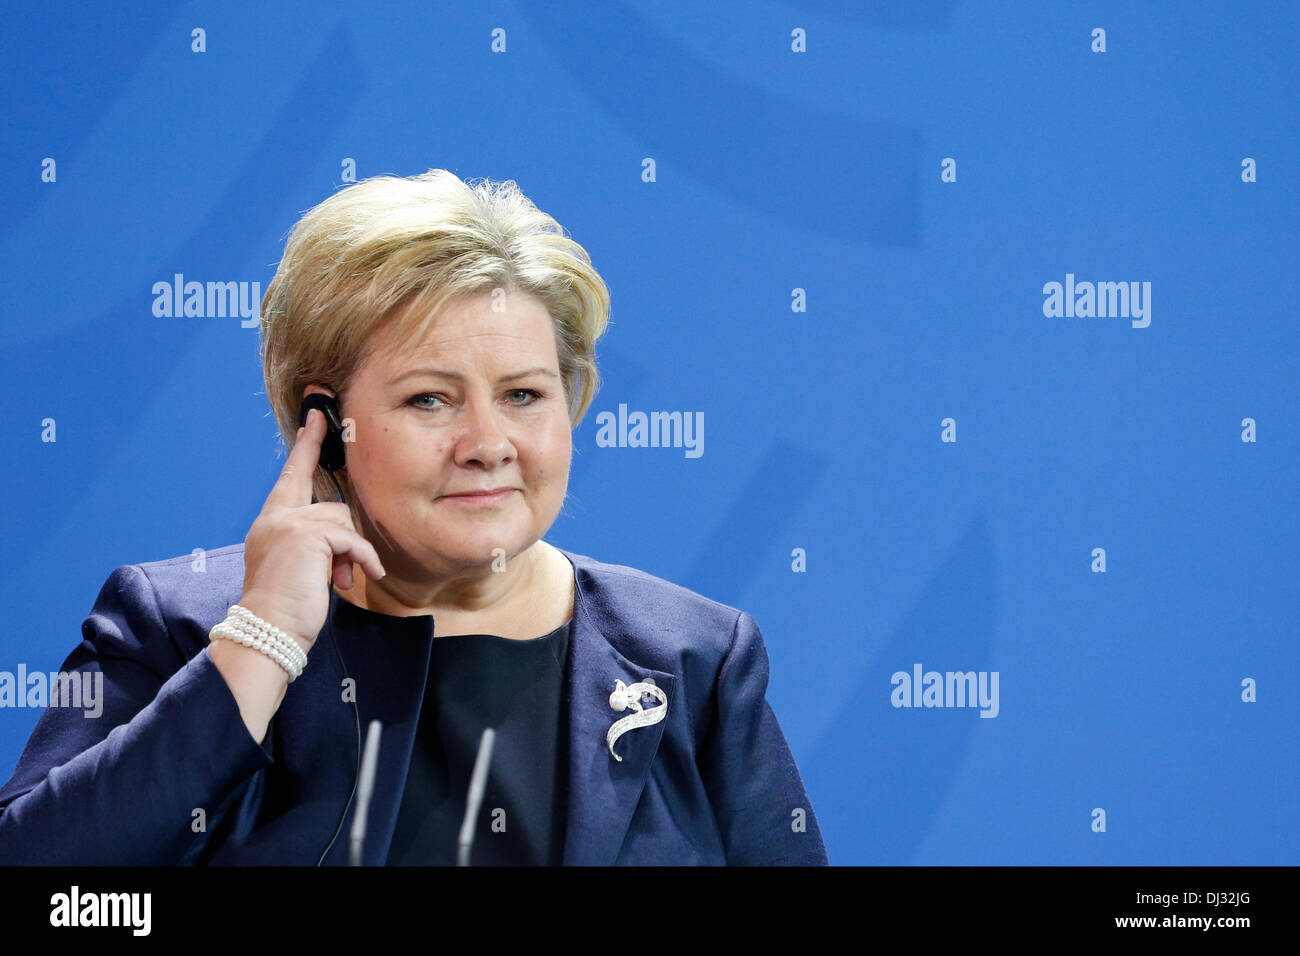 Berlin, Germany. November 20th, 2013. Angela Merkel, German Chancellor, receives Norwegian prime minister Erna Solberg (Conservative Party), at the Chancellery in Berlin. / Picture: Norwegian prime minister Erna Solberg (Conservative Party),  speaks at press conference in berlin. Credit:  Reynaldo Chaib Paganelli/Alamy Live News - Stock Image